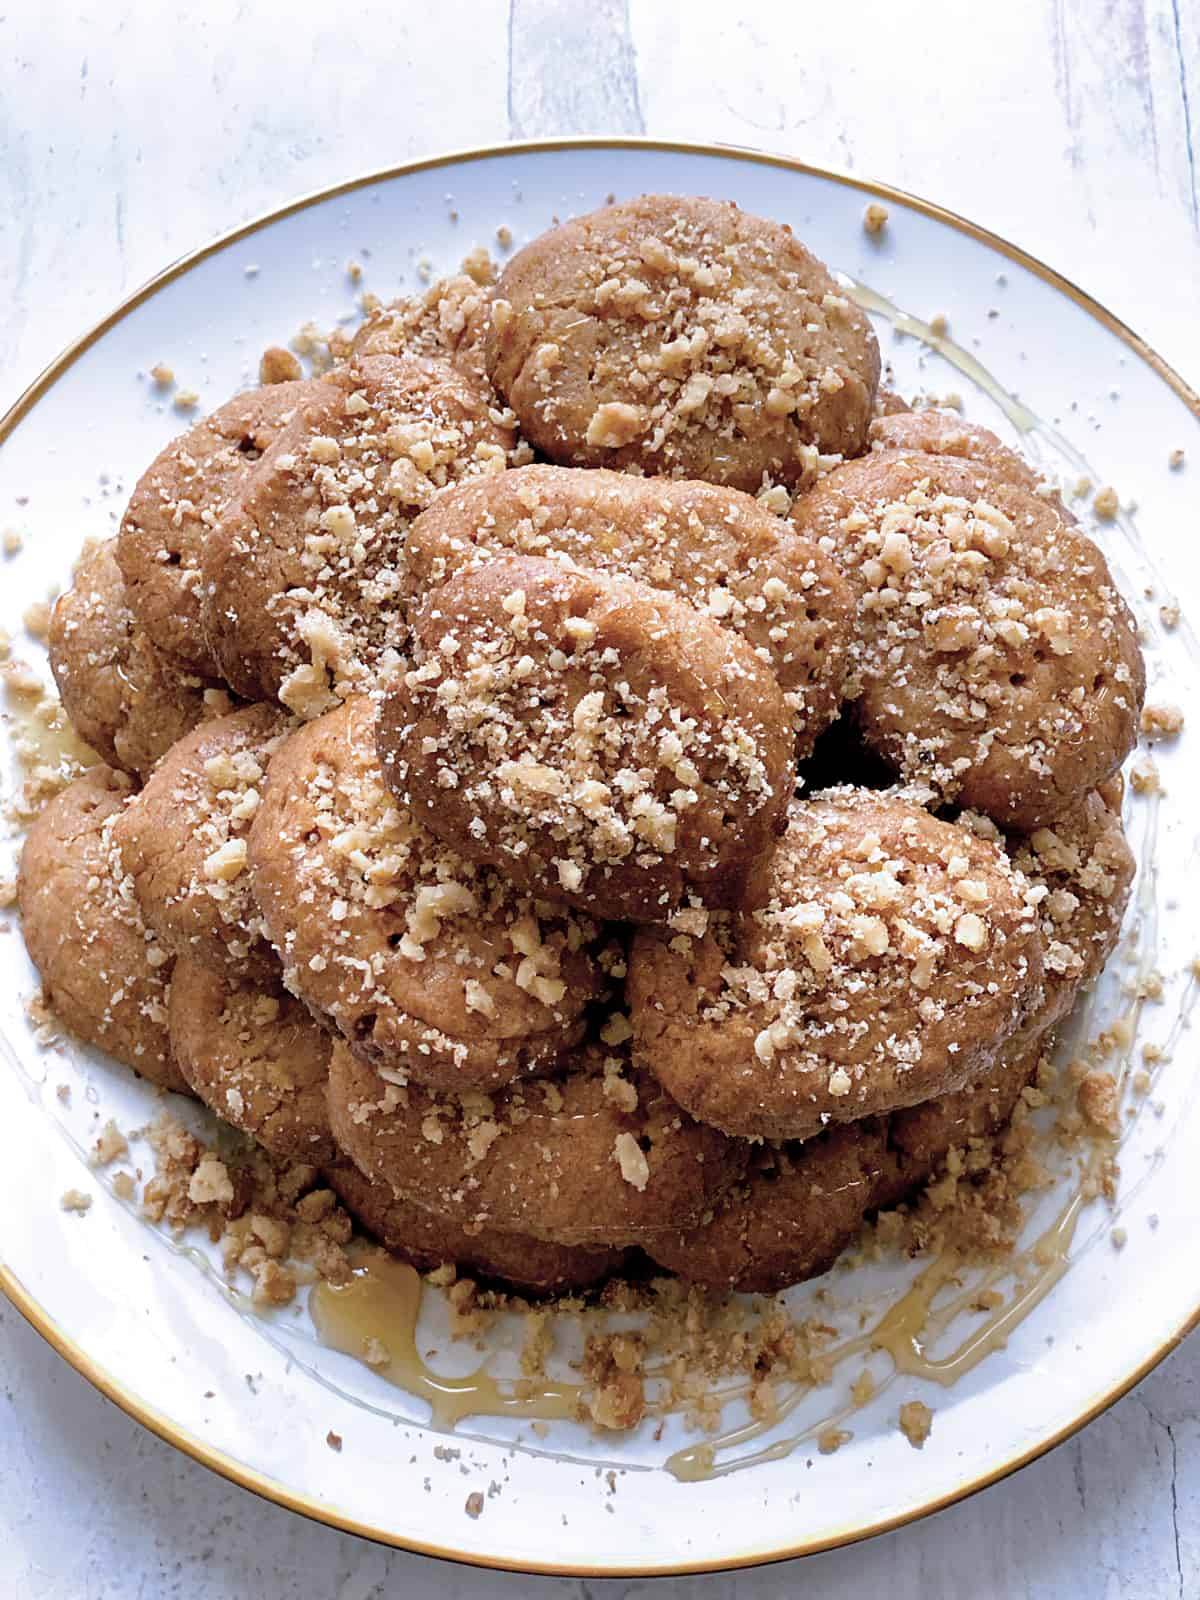 A plate with melomakarona cookies.